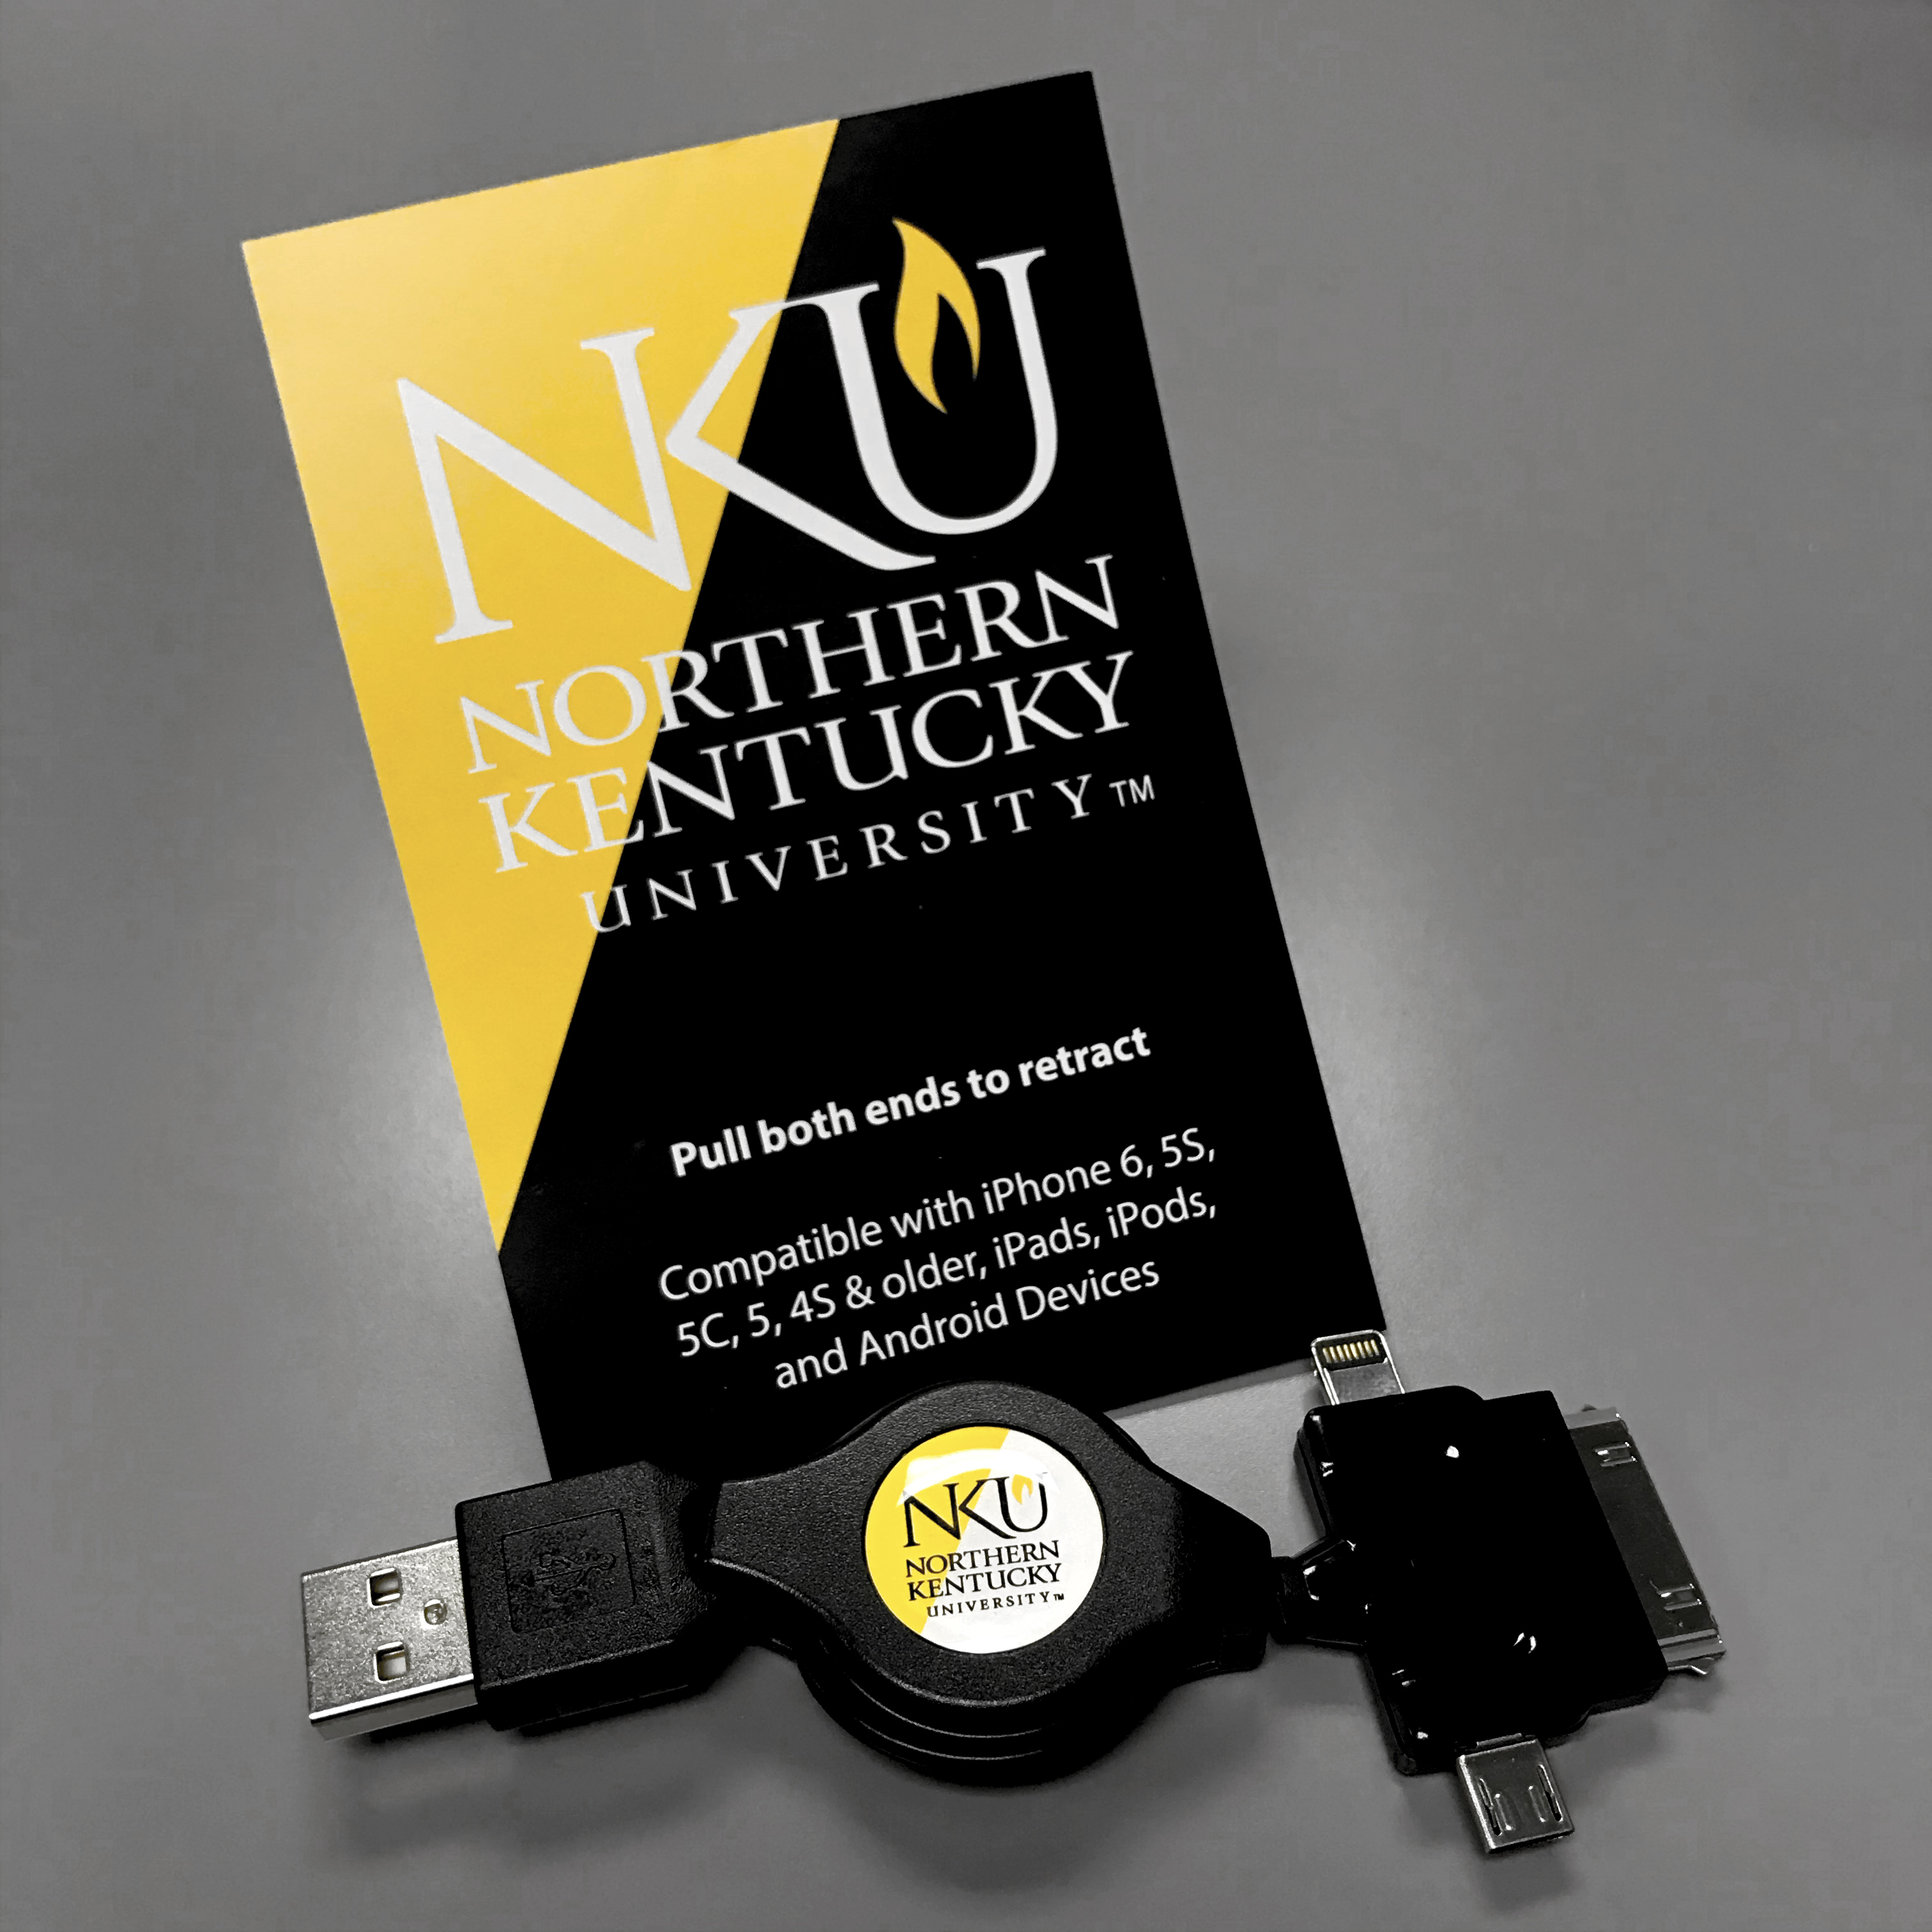 NKU custom made phone charger.